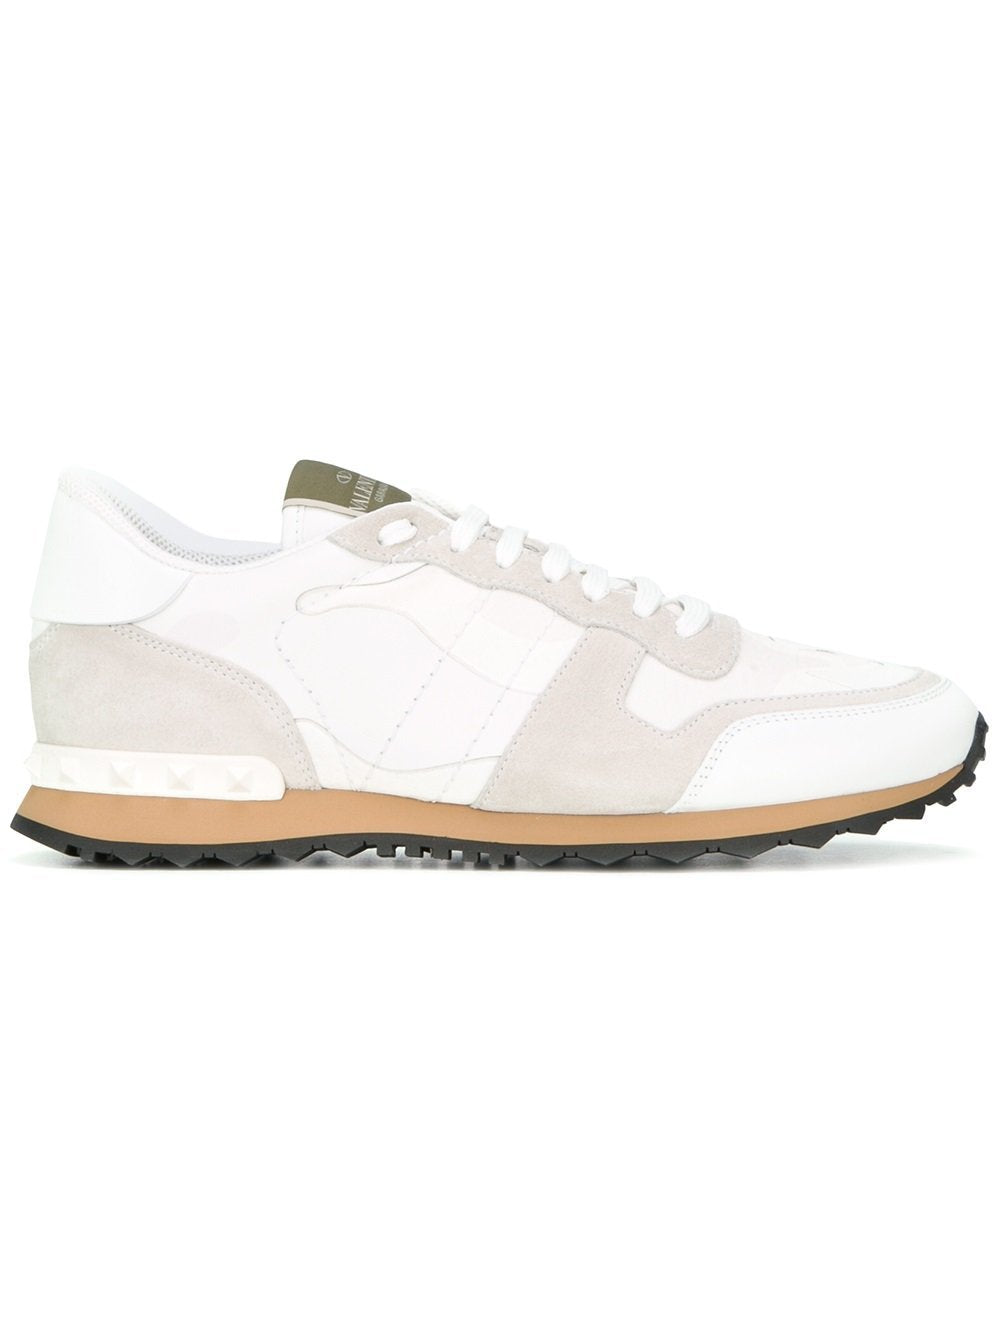 f5f5310adf4 Load image into Gallery viewer, Valentino Camo Rockrunner Sneaker White ...